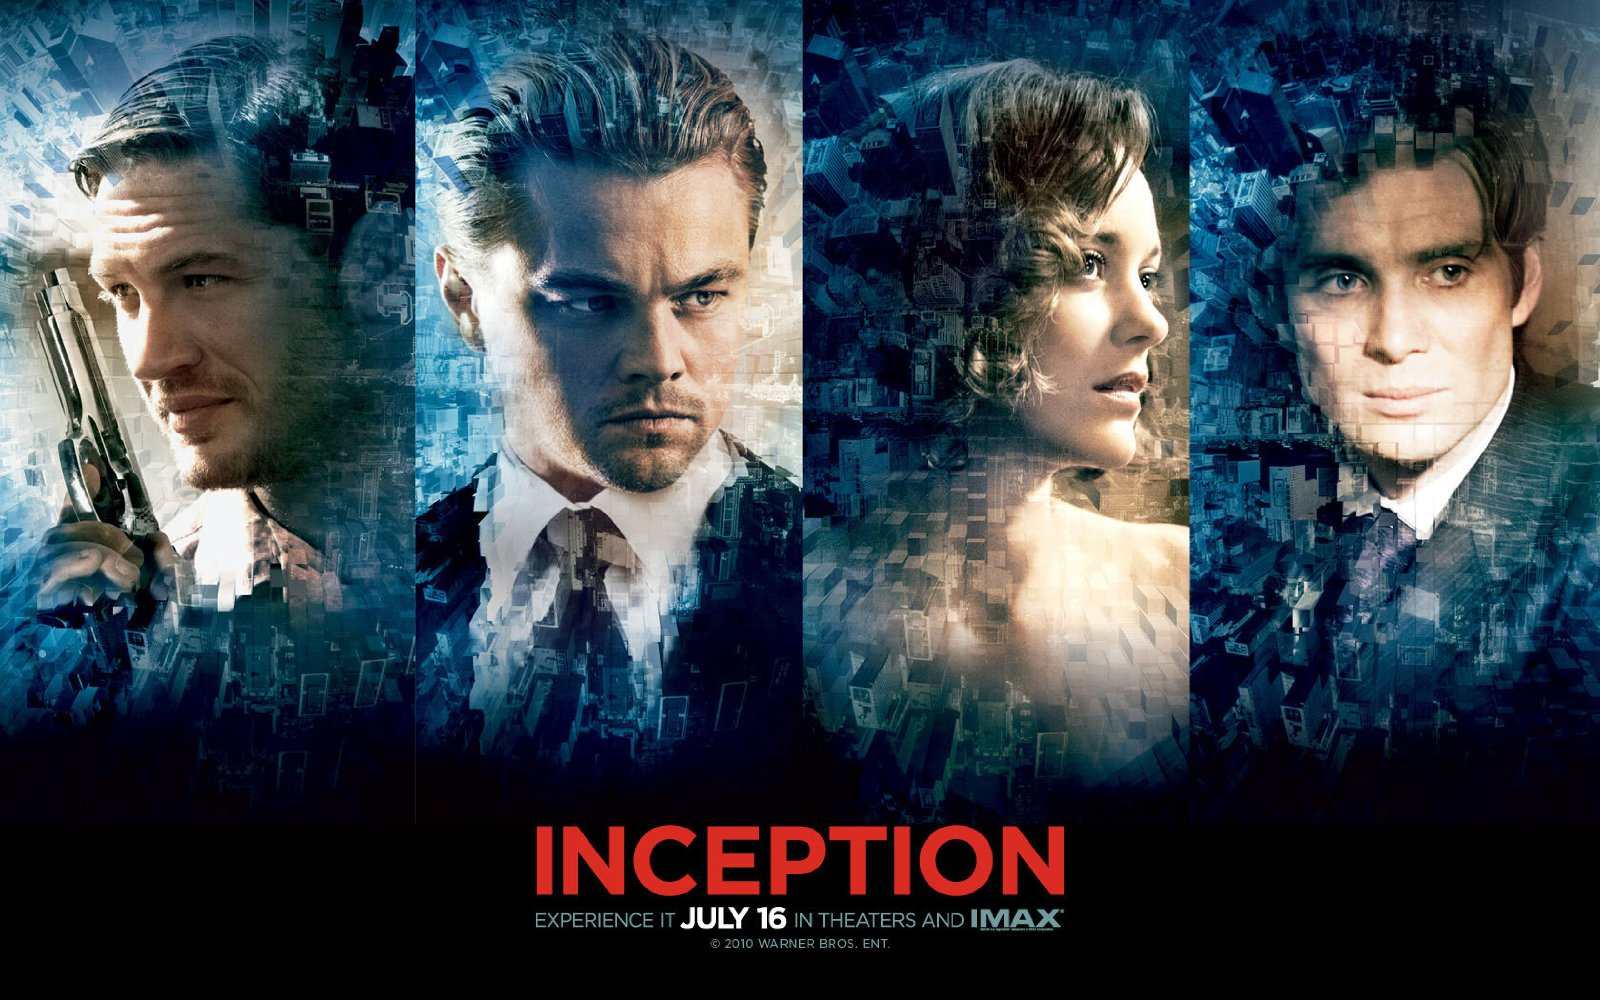 Watch Movies And Tv Shows With Character Mal For Free List Of Movies Scary Movie 5 Inception